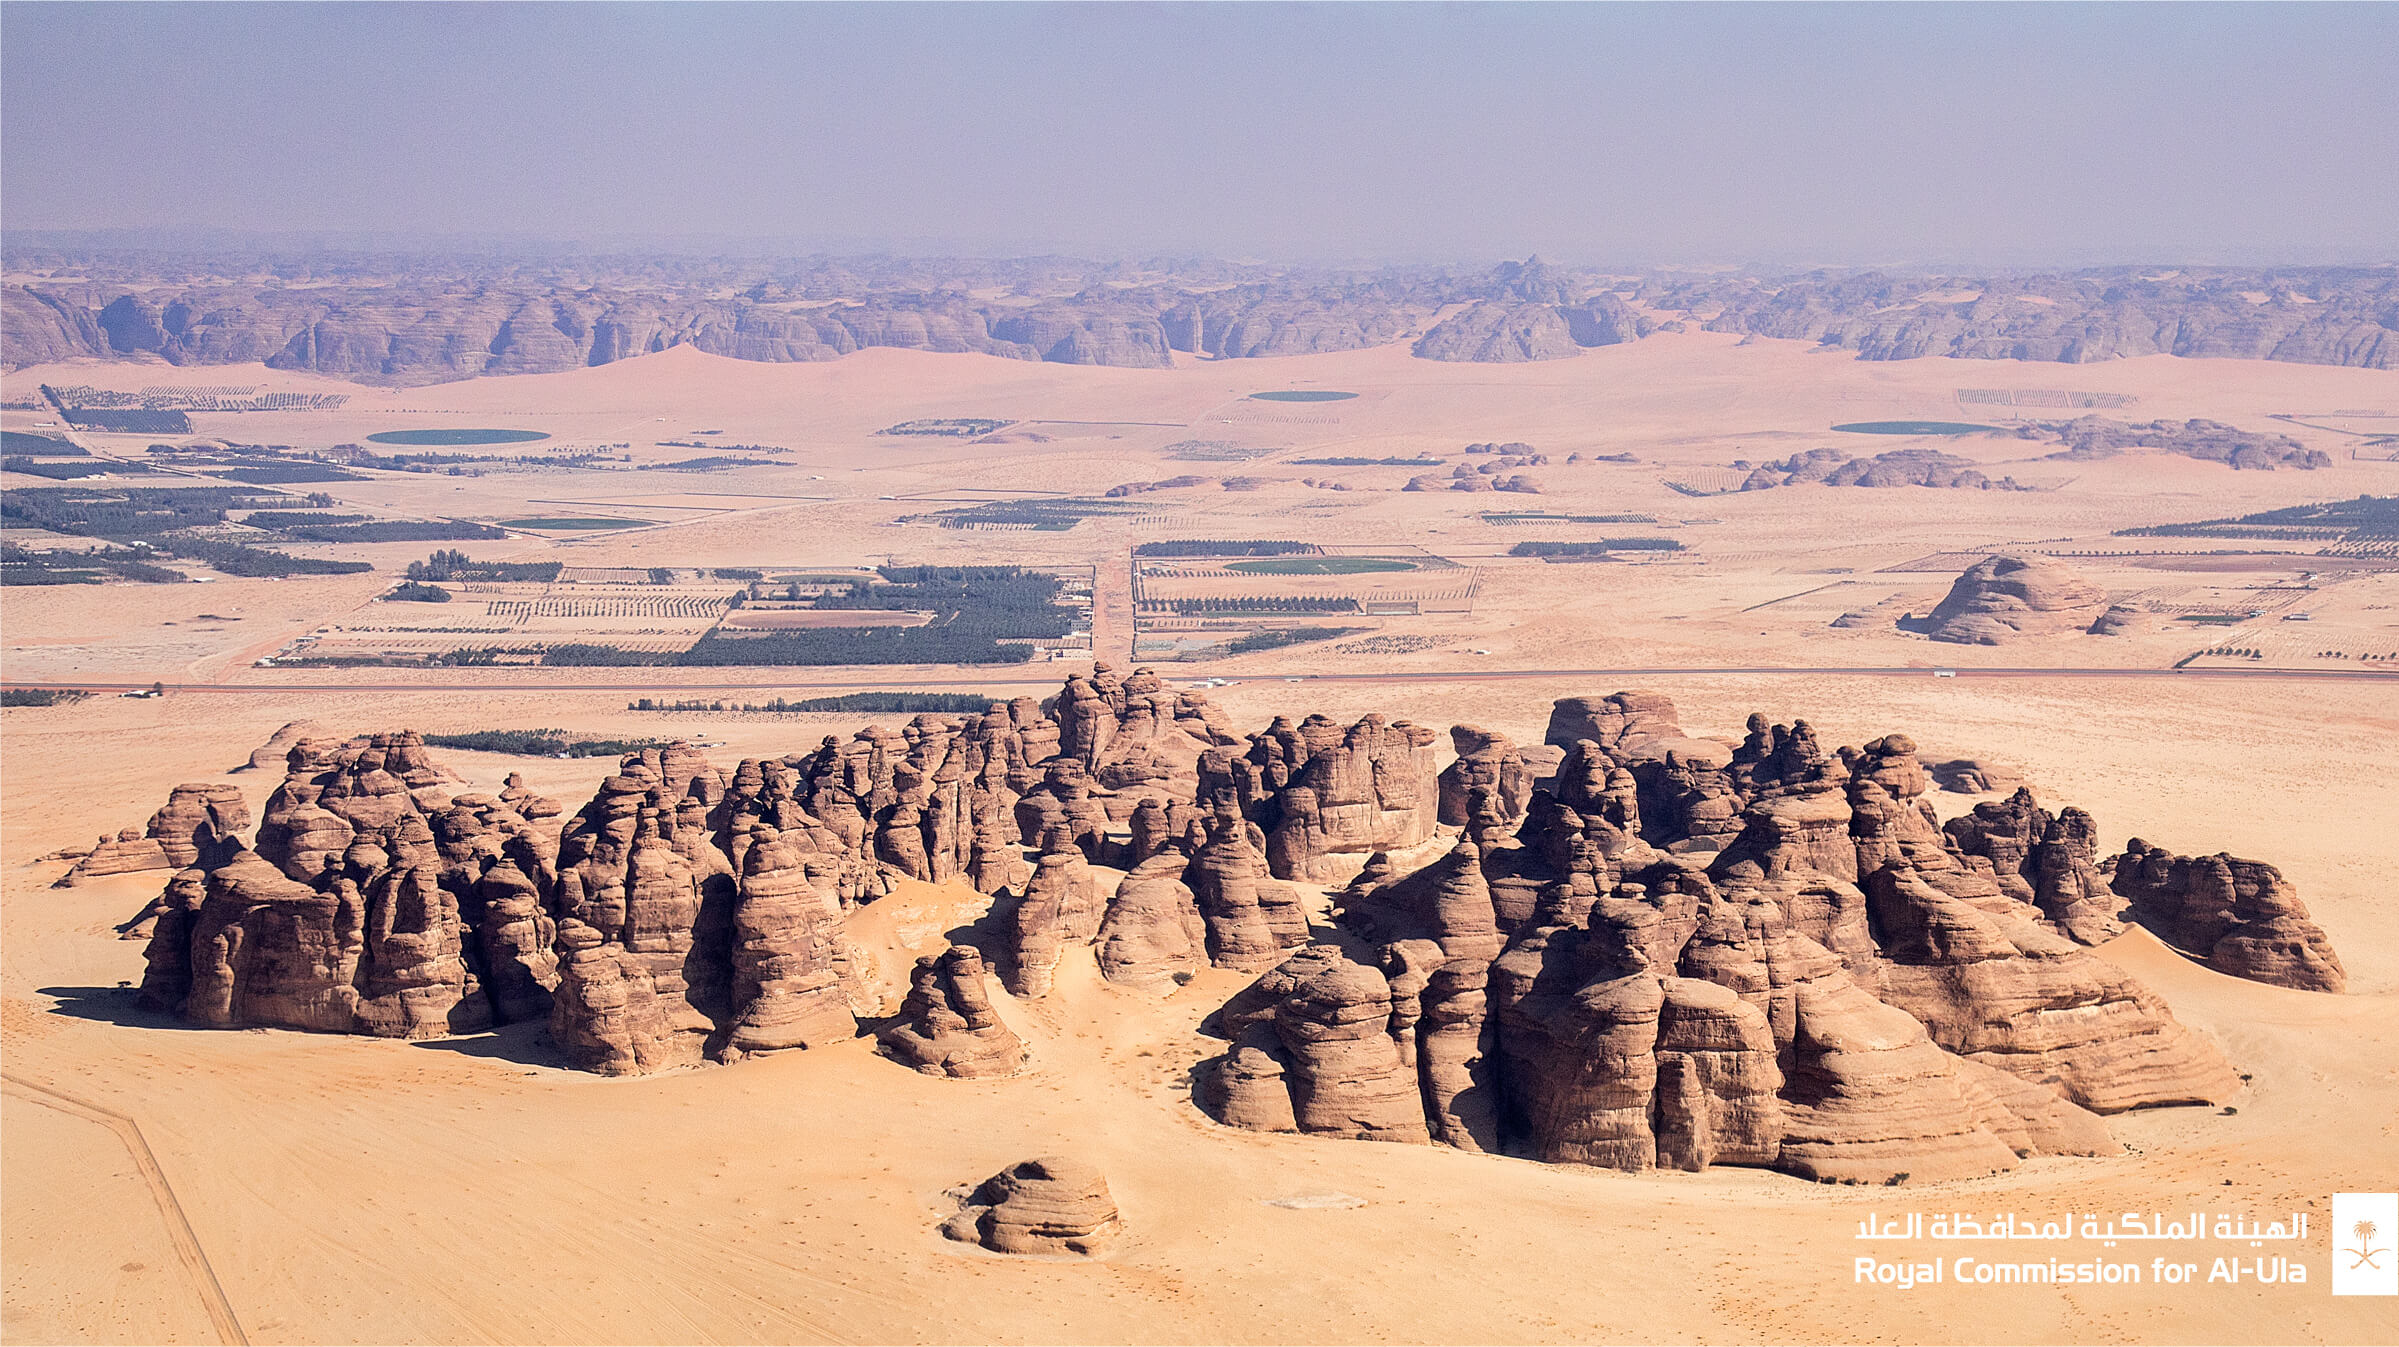 Rock formations in the historic al-Ula valley, Saudi Arabia, future home of a Jean Nouvel luxury resort